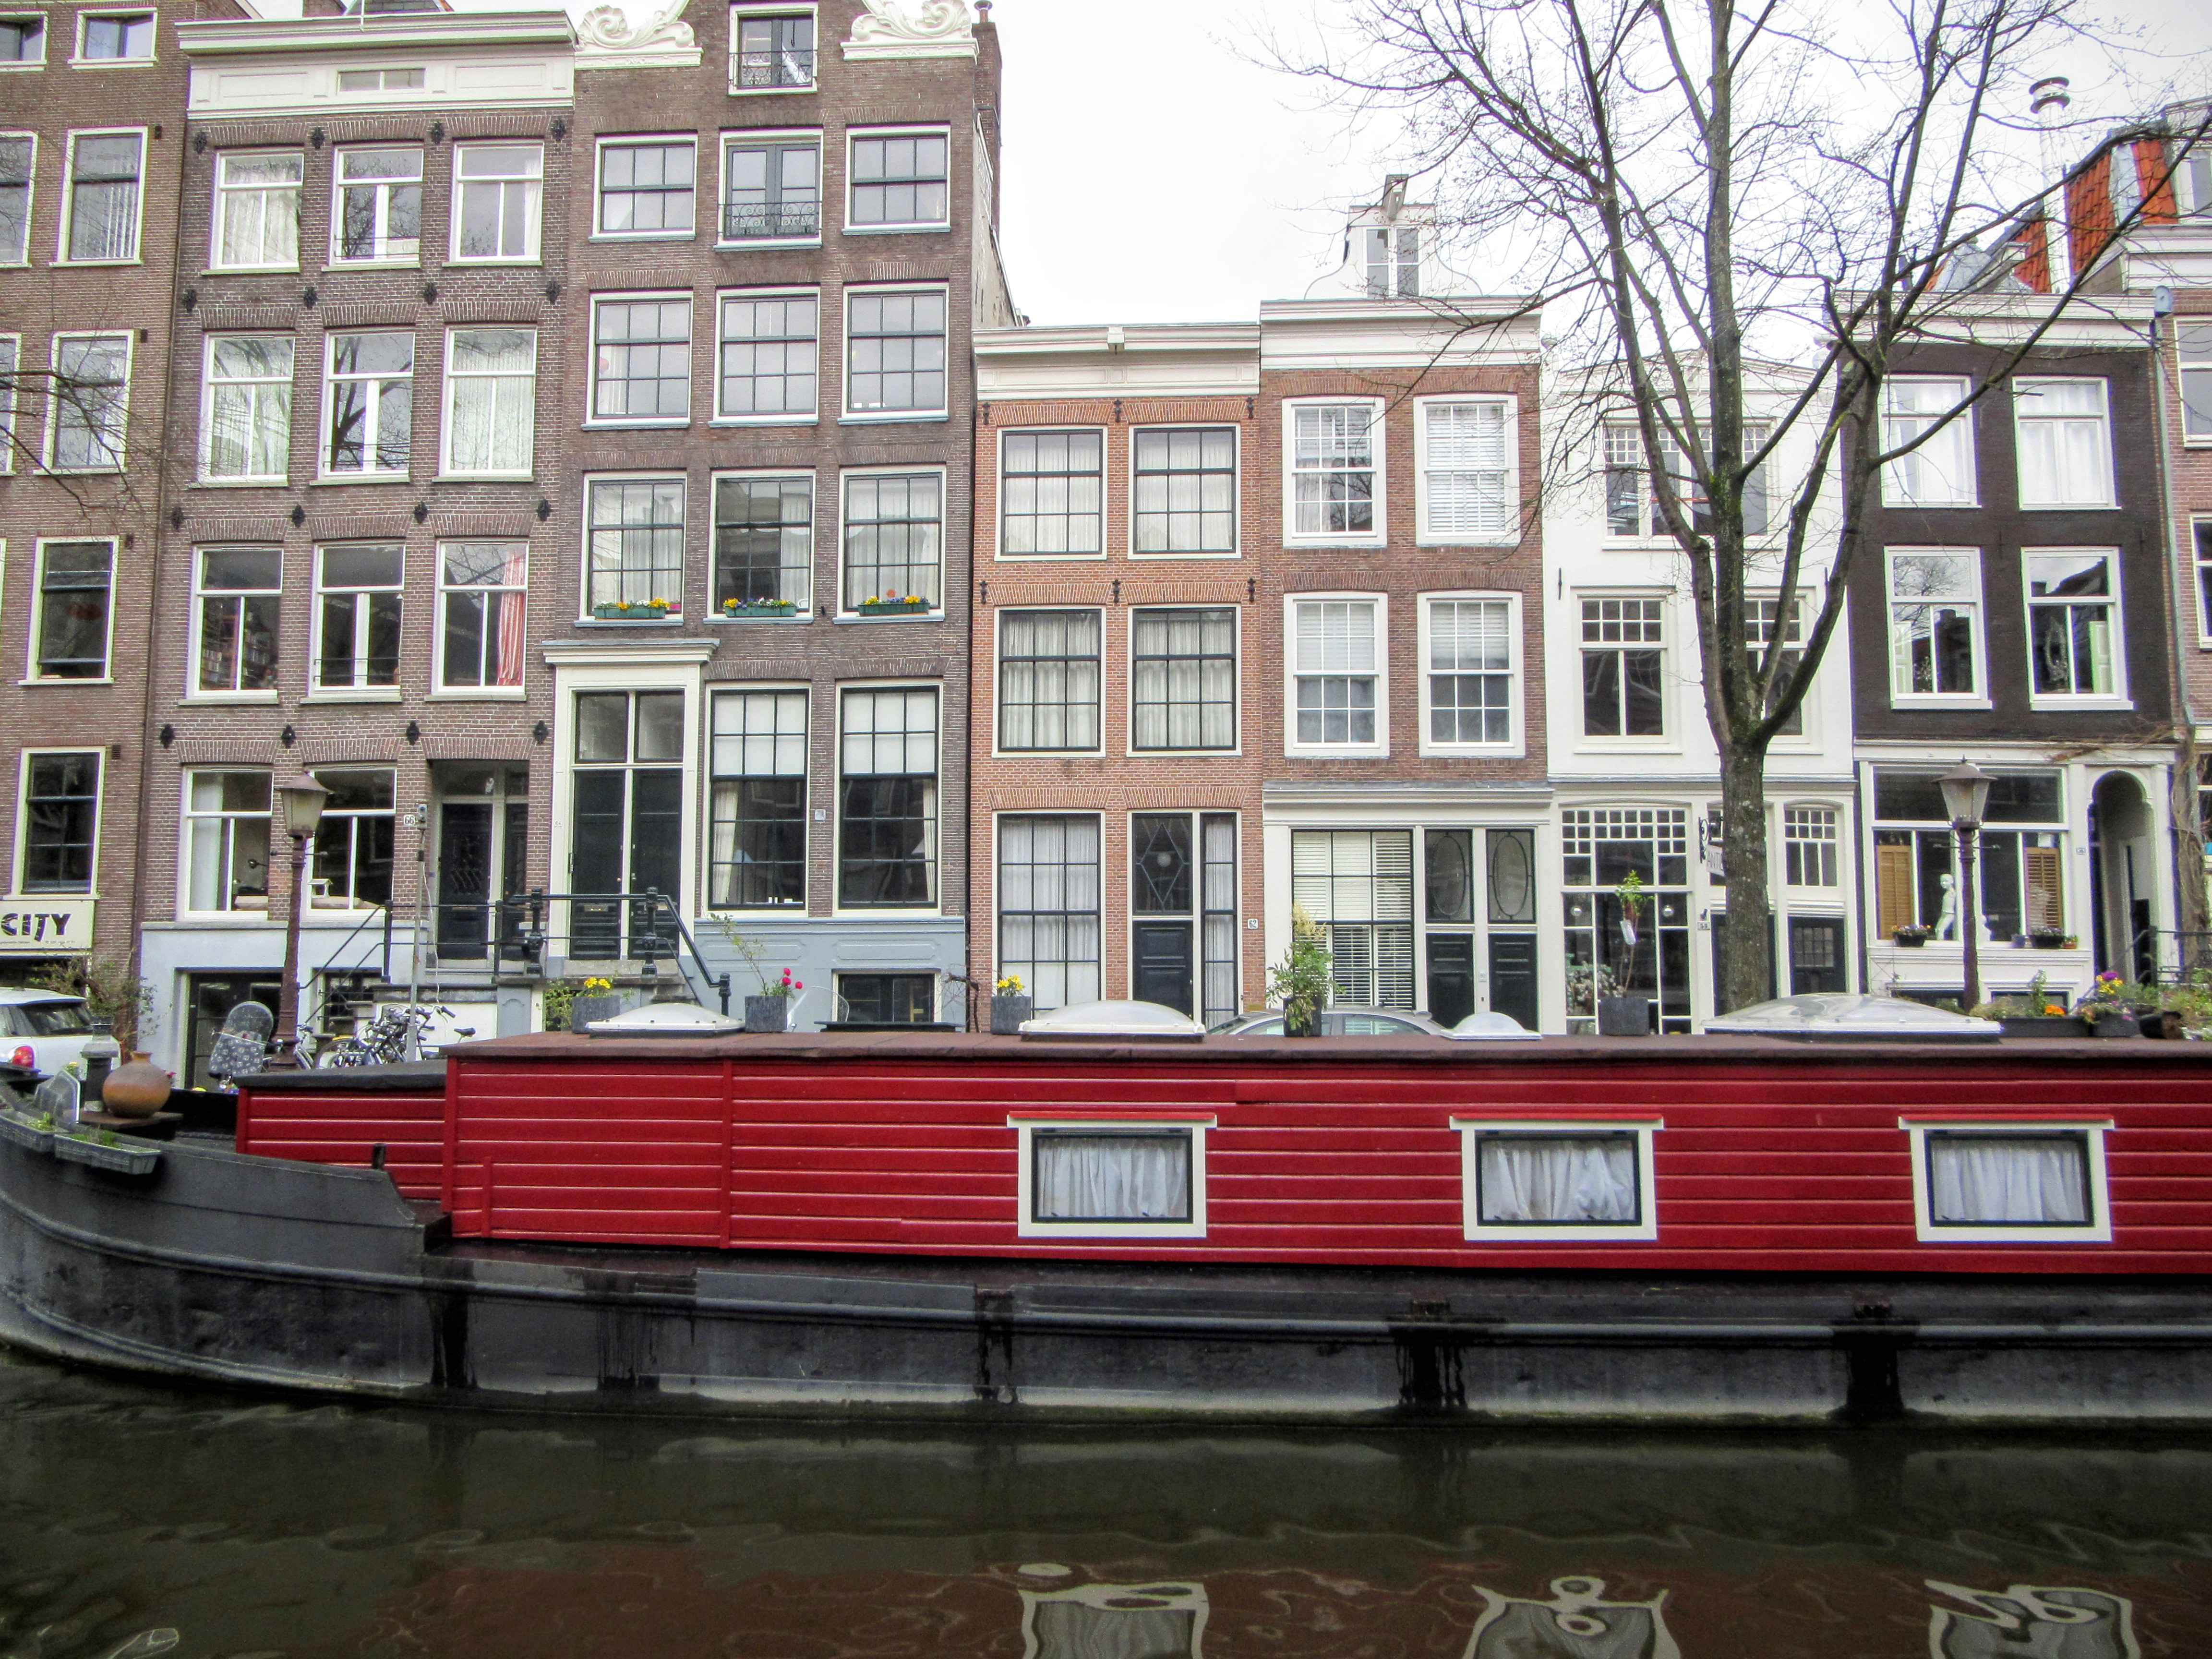 A house boat and homes along canal in Amsterdam. | On Traveling Europe Together.